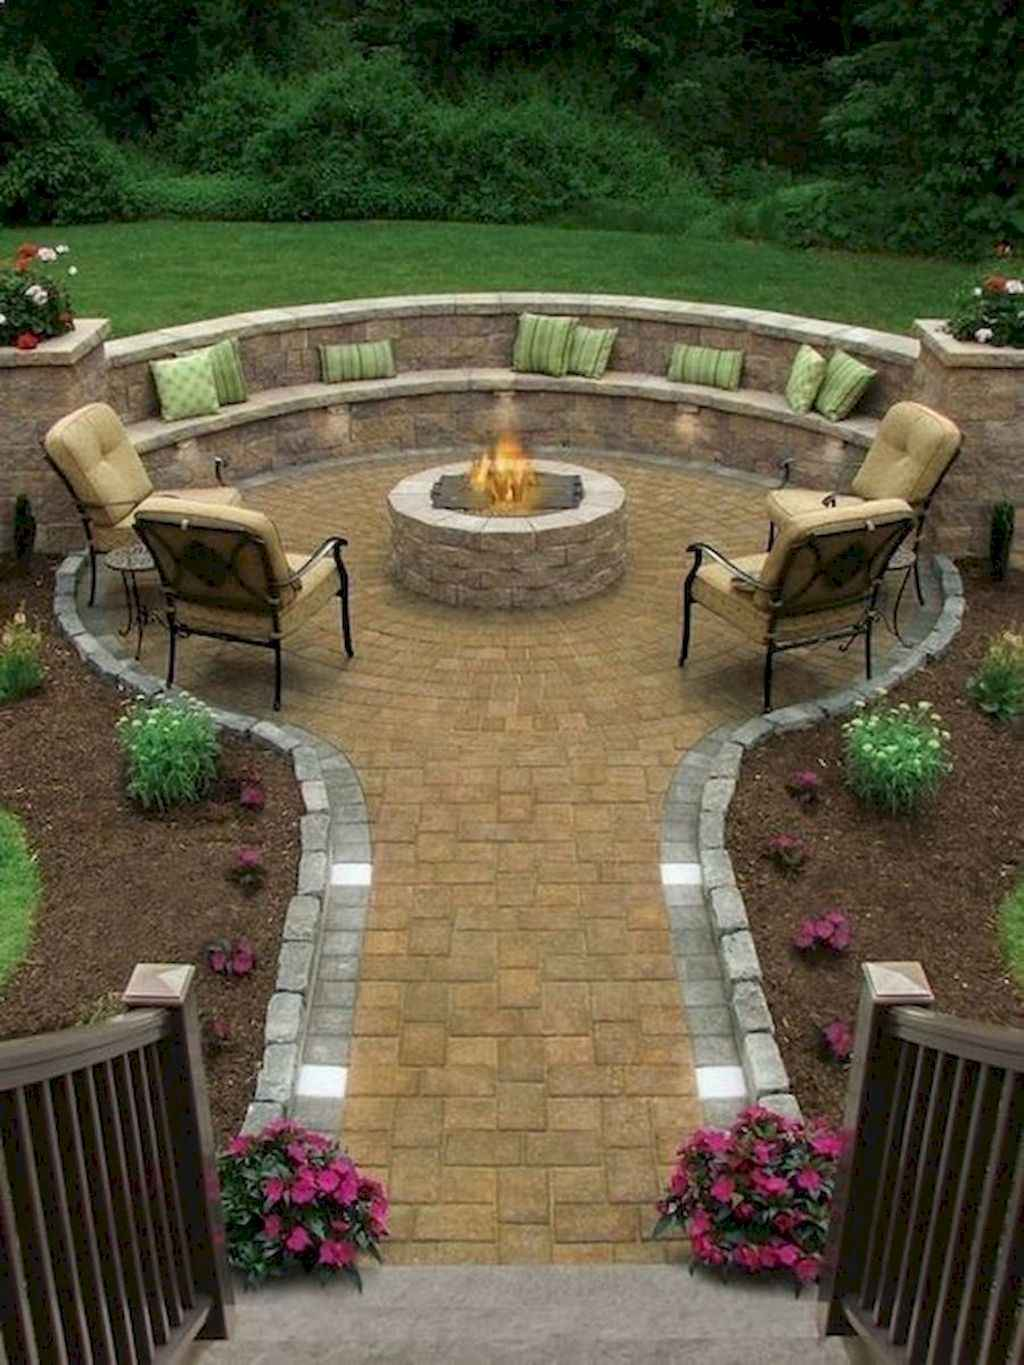 33 Easy Backyard Fire Pit with Cozy Seating Area Ideas